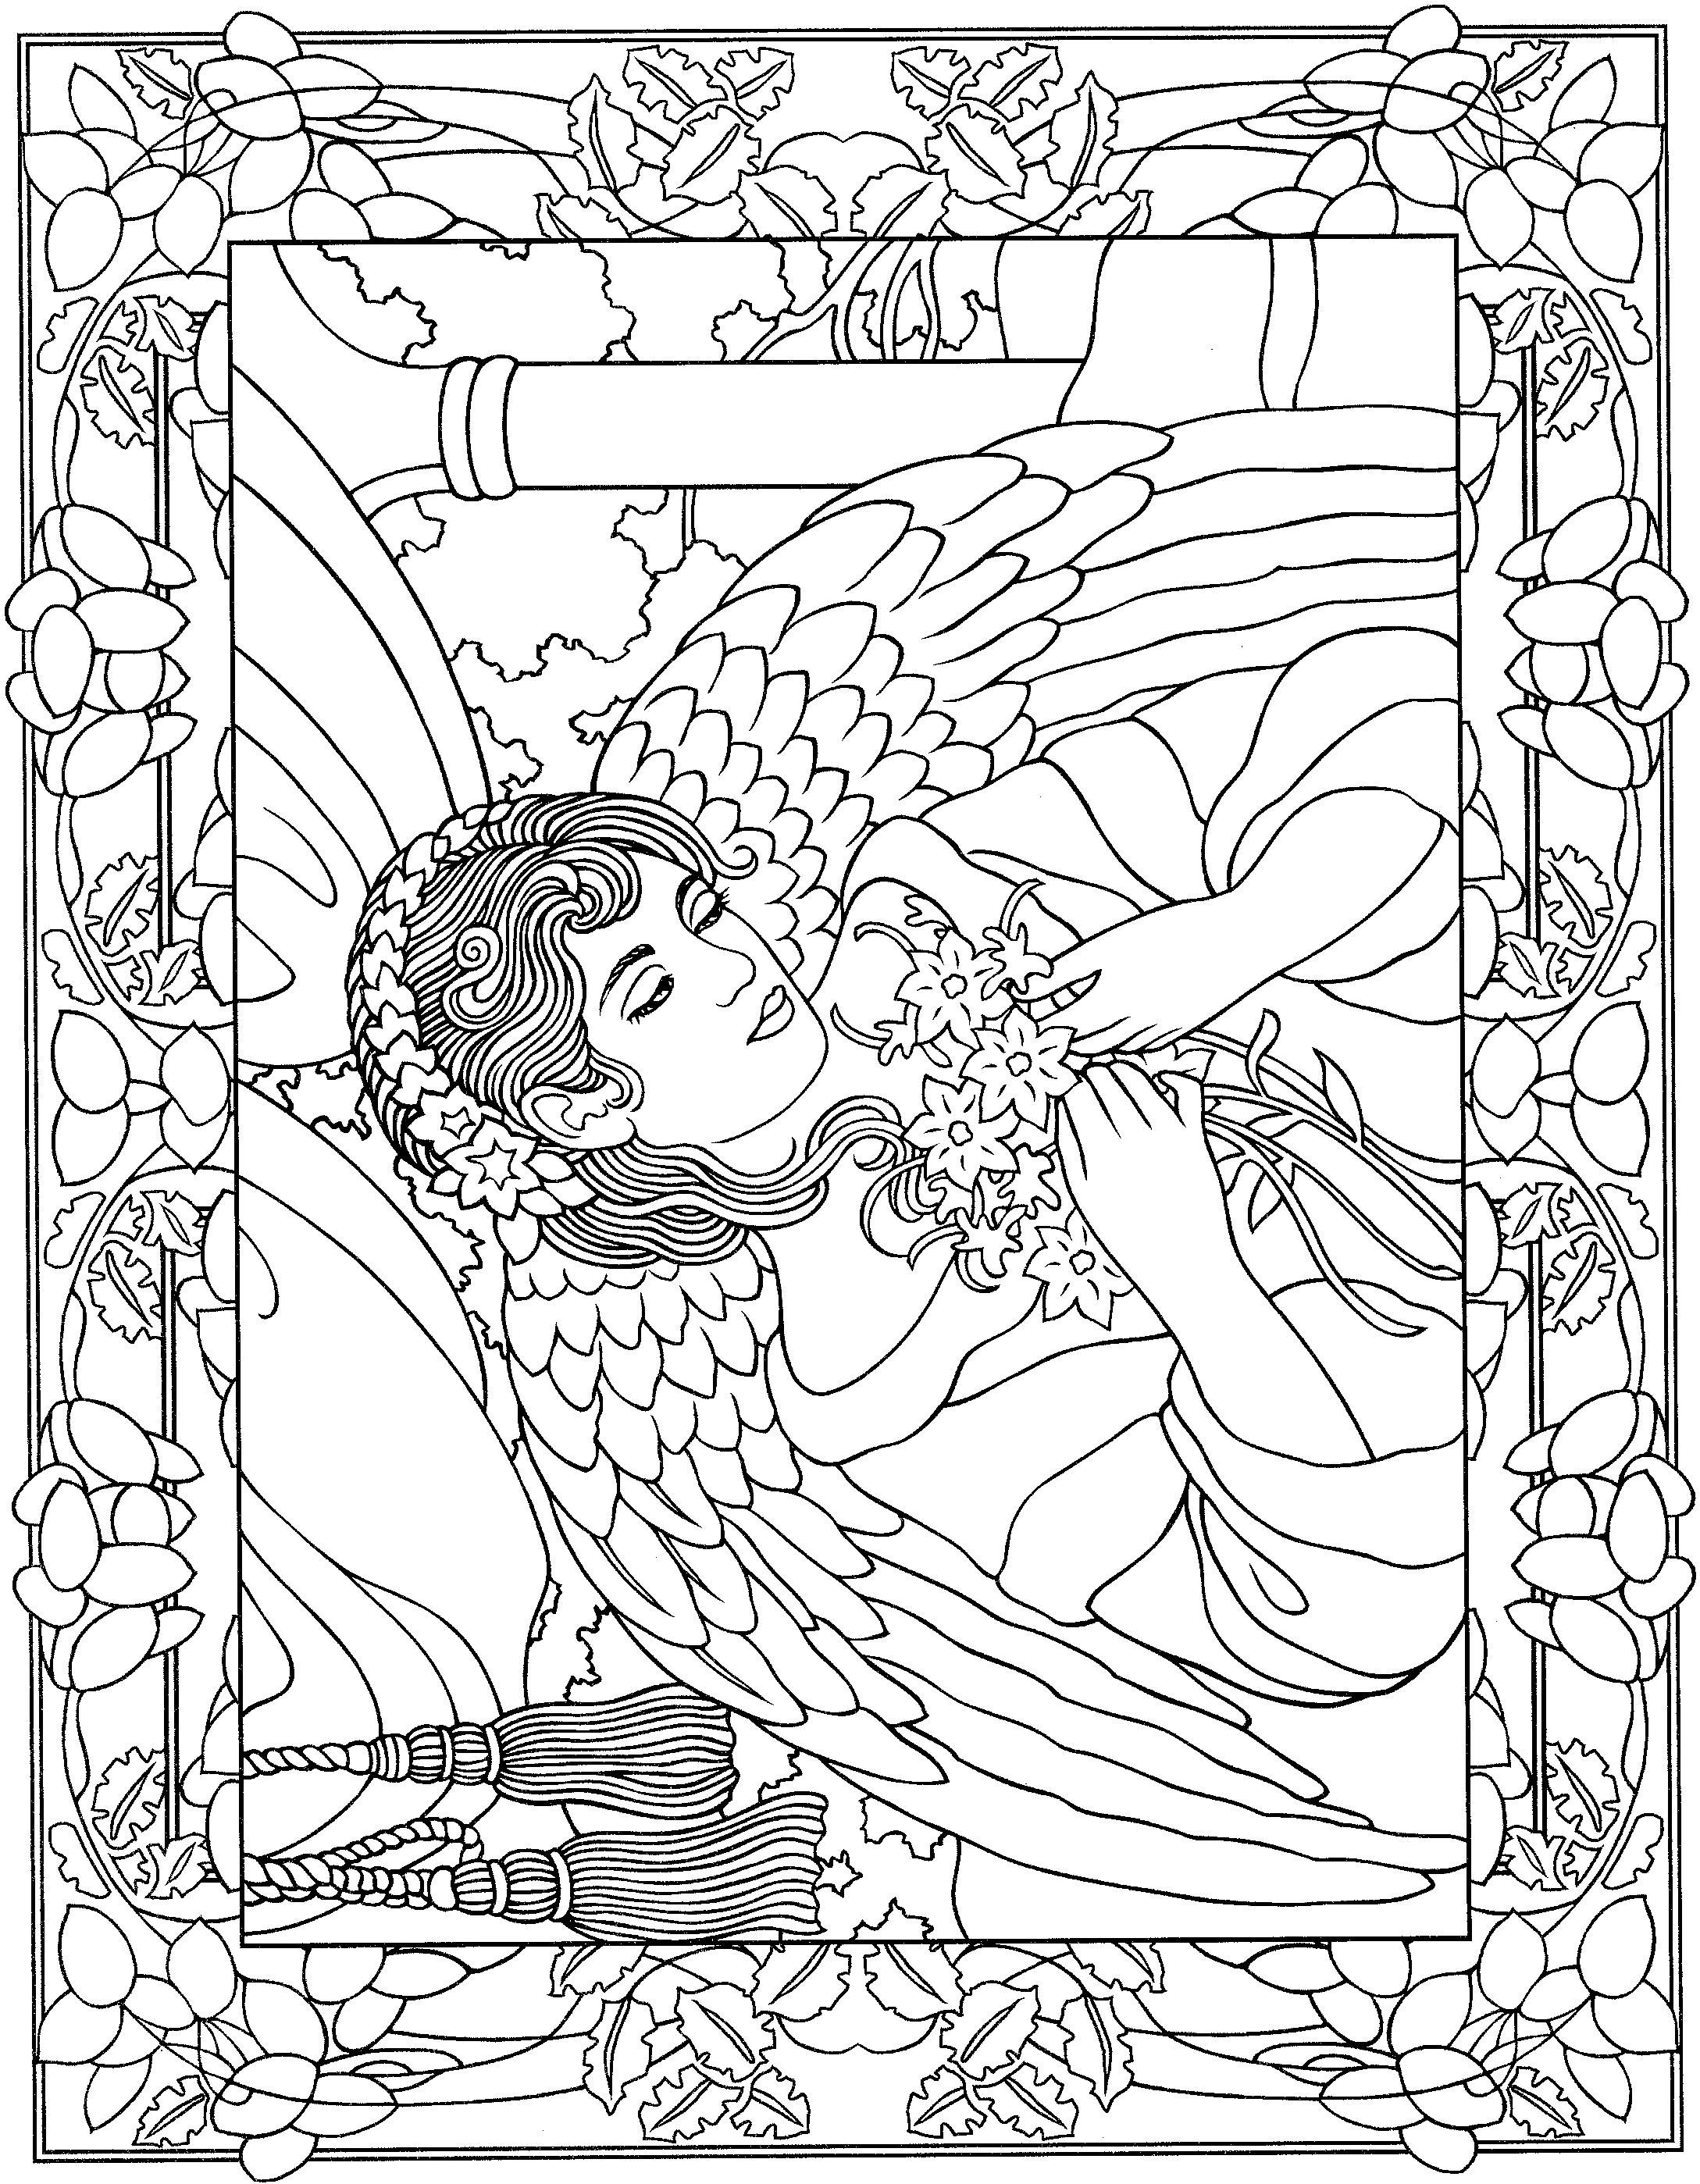 angel coloring page 20 free printable angel coloring pages for adults coloring angel page